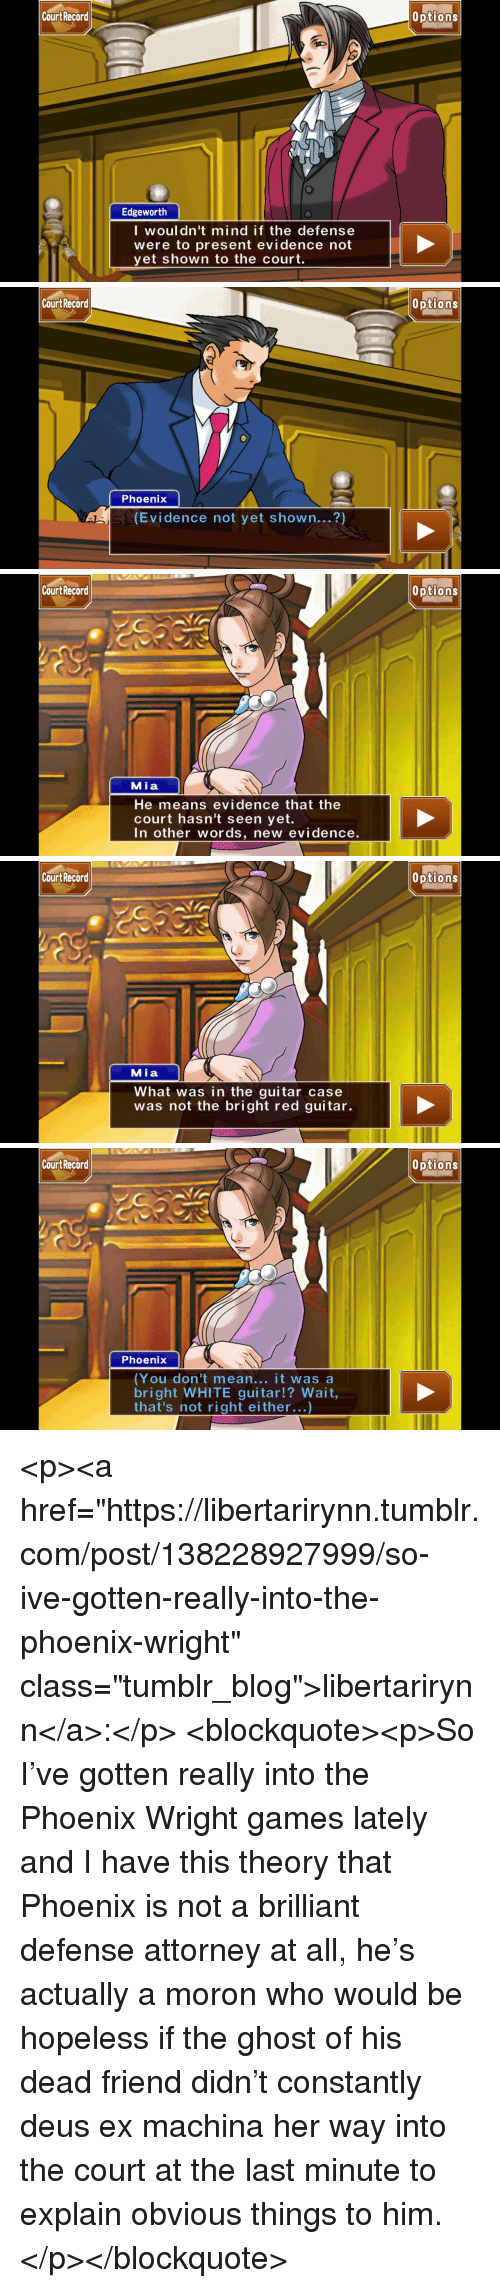 """Tumblr, Blog, and Ex Machina: Court Recard  0ptions  Edgeworth  I woul dn't mind if the defense  were to present evidence not  yet shown to the court.   Cou  rt Record  Options  Phoenix  (Evidence not yet shown...?)   Cou  rt Record  Options  Mia  He means evidence that the  court hasn't seen yet.  In other words, new evidence.   Cou  rt Record  Options  Mia  What was in the guitar case  was not the bright red guitar.   Cou  rt Record  Options  Phoenix  (You don't mean... it was a  bright WHITE guitar!? Wait  that's not right either...) <p><a href=""""https://libertarirynn.tumblr.com/post/138228927999/so-ive-gotten-really-into-the-phoenix-wright"""" class=""""tumblr_blog"""">libertarirynn</a>:</p>  <blockquote><p>So I've gotten really into the Phoenix Wright games lately and I have this theory that Phoenix is not a brilliant defense attorney at all, he's actually a moron who would be hopeless if the ghost of his dead friend didn't constantly deus ex machina her way into the court at the last minute to explain obvious things to him.</p></blockquote>"""